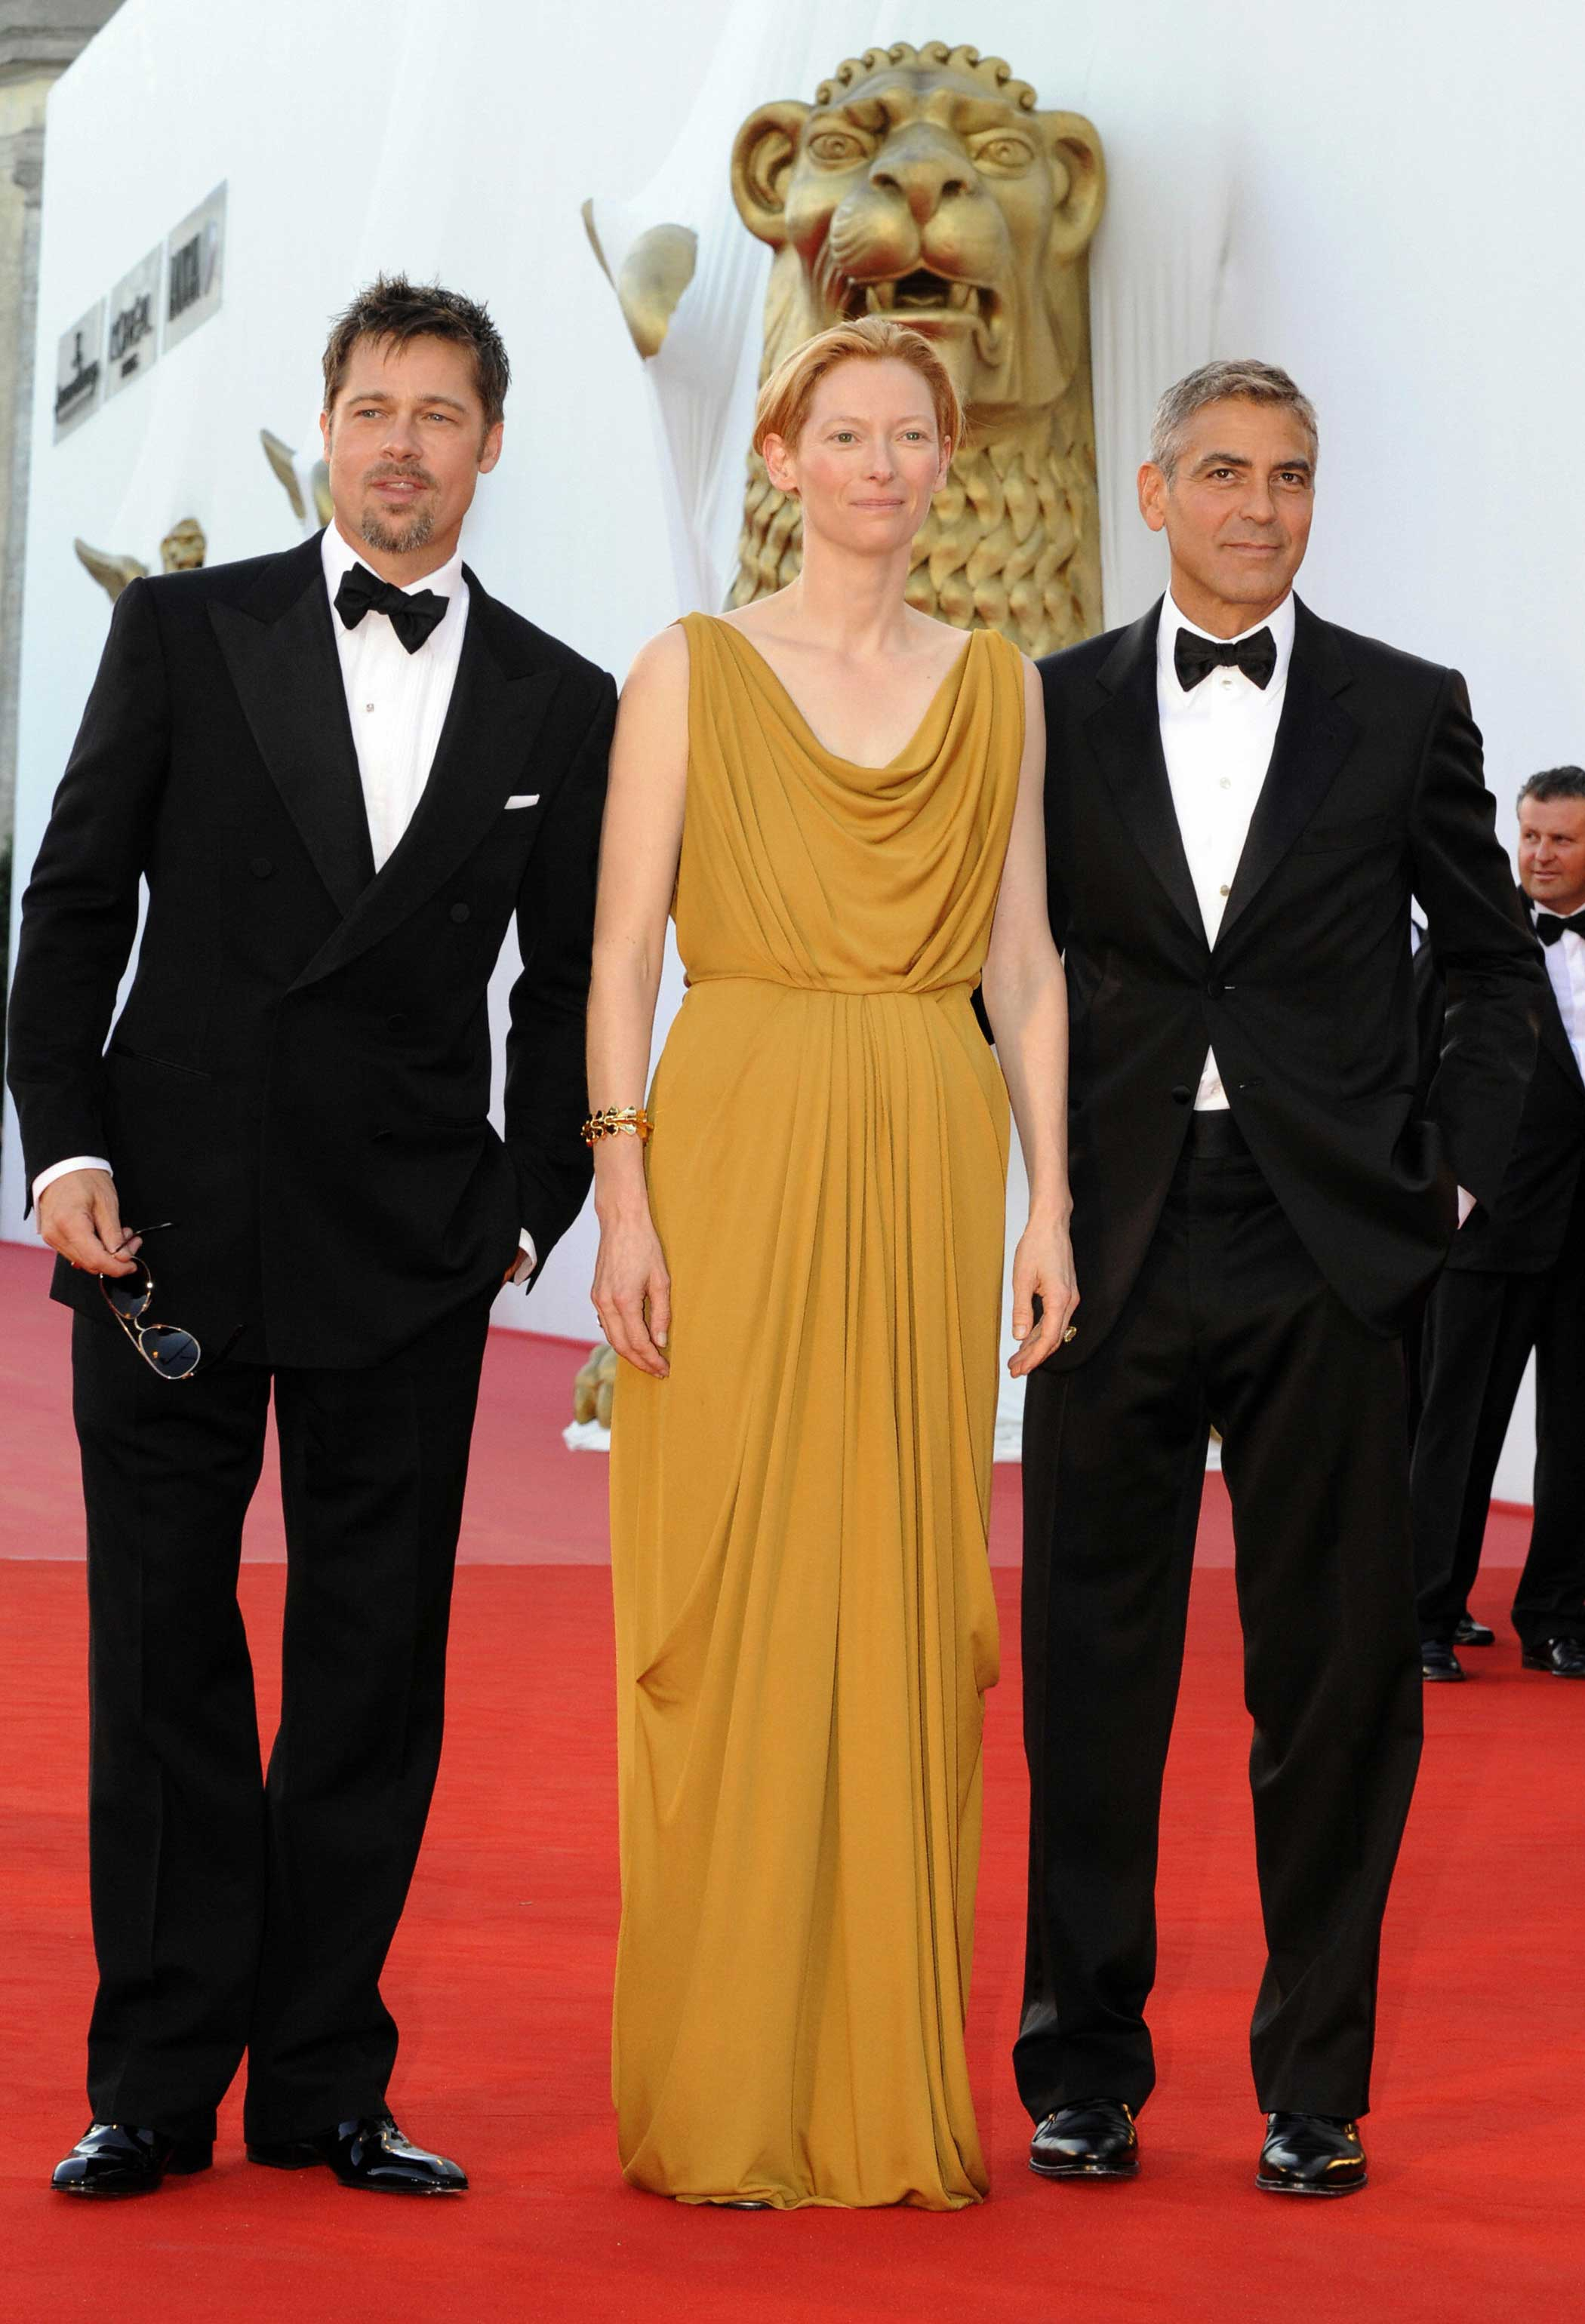 From left: Brad Pitt, Tilda Swinton, and George Clooney pose before the screening of Burn After Reading in Venice, Italy on Aug. 27, 2008.